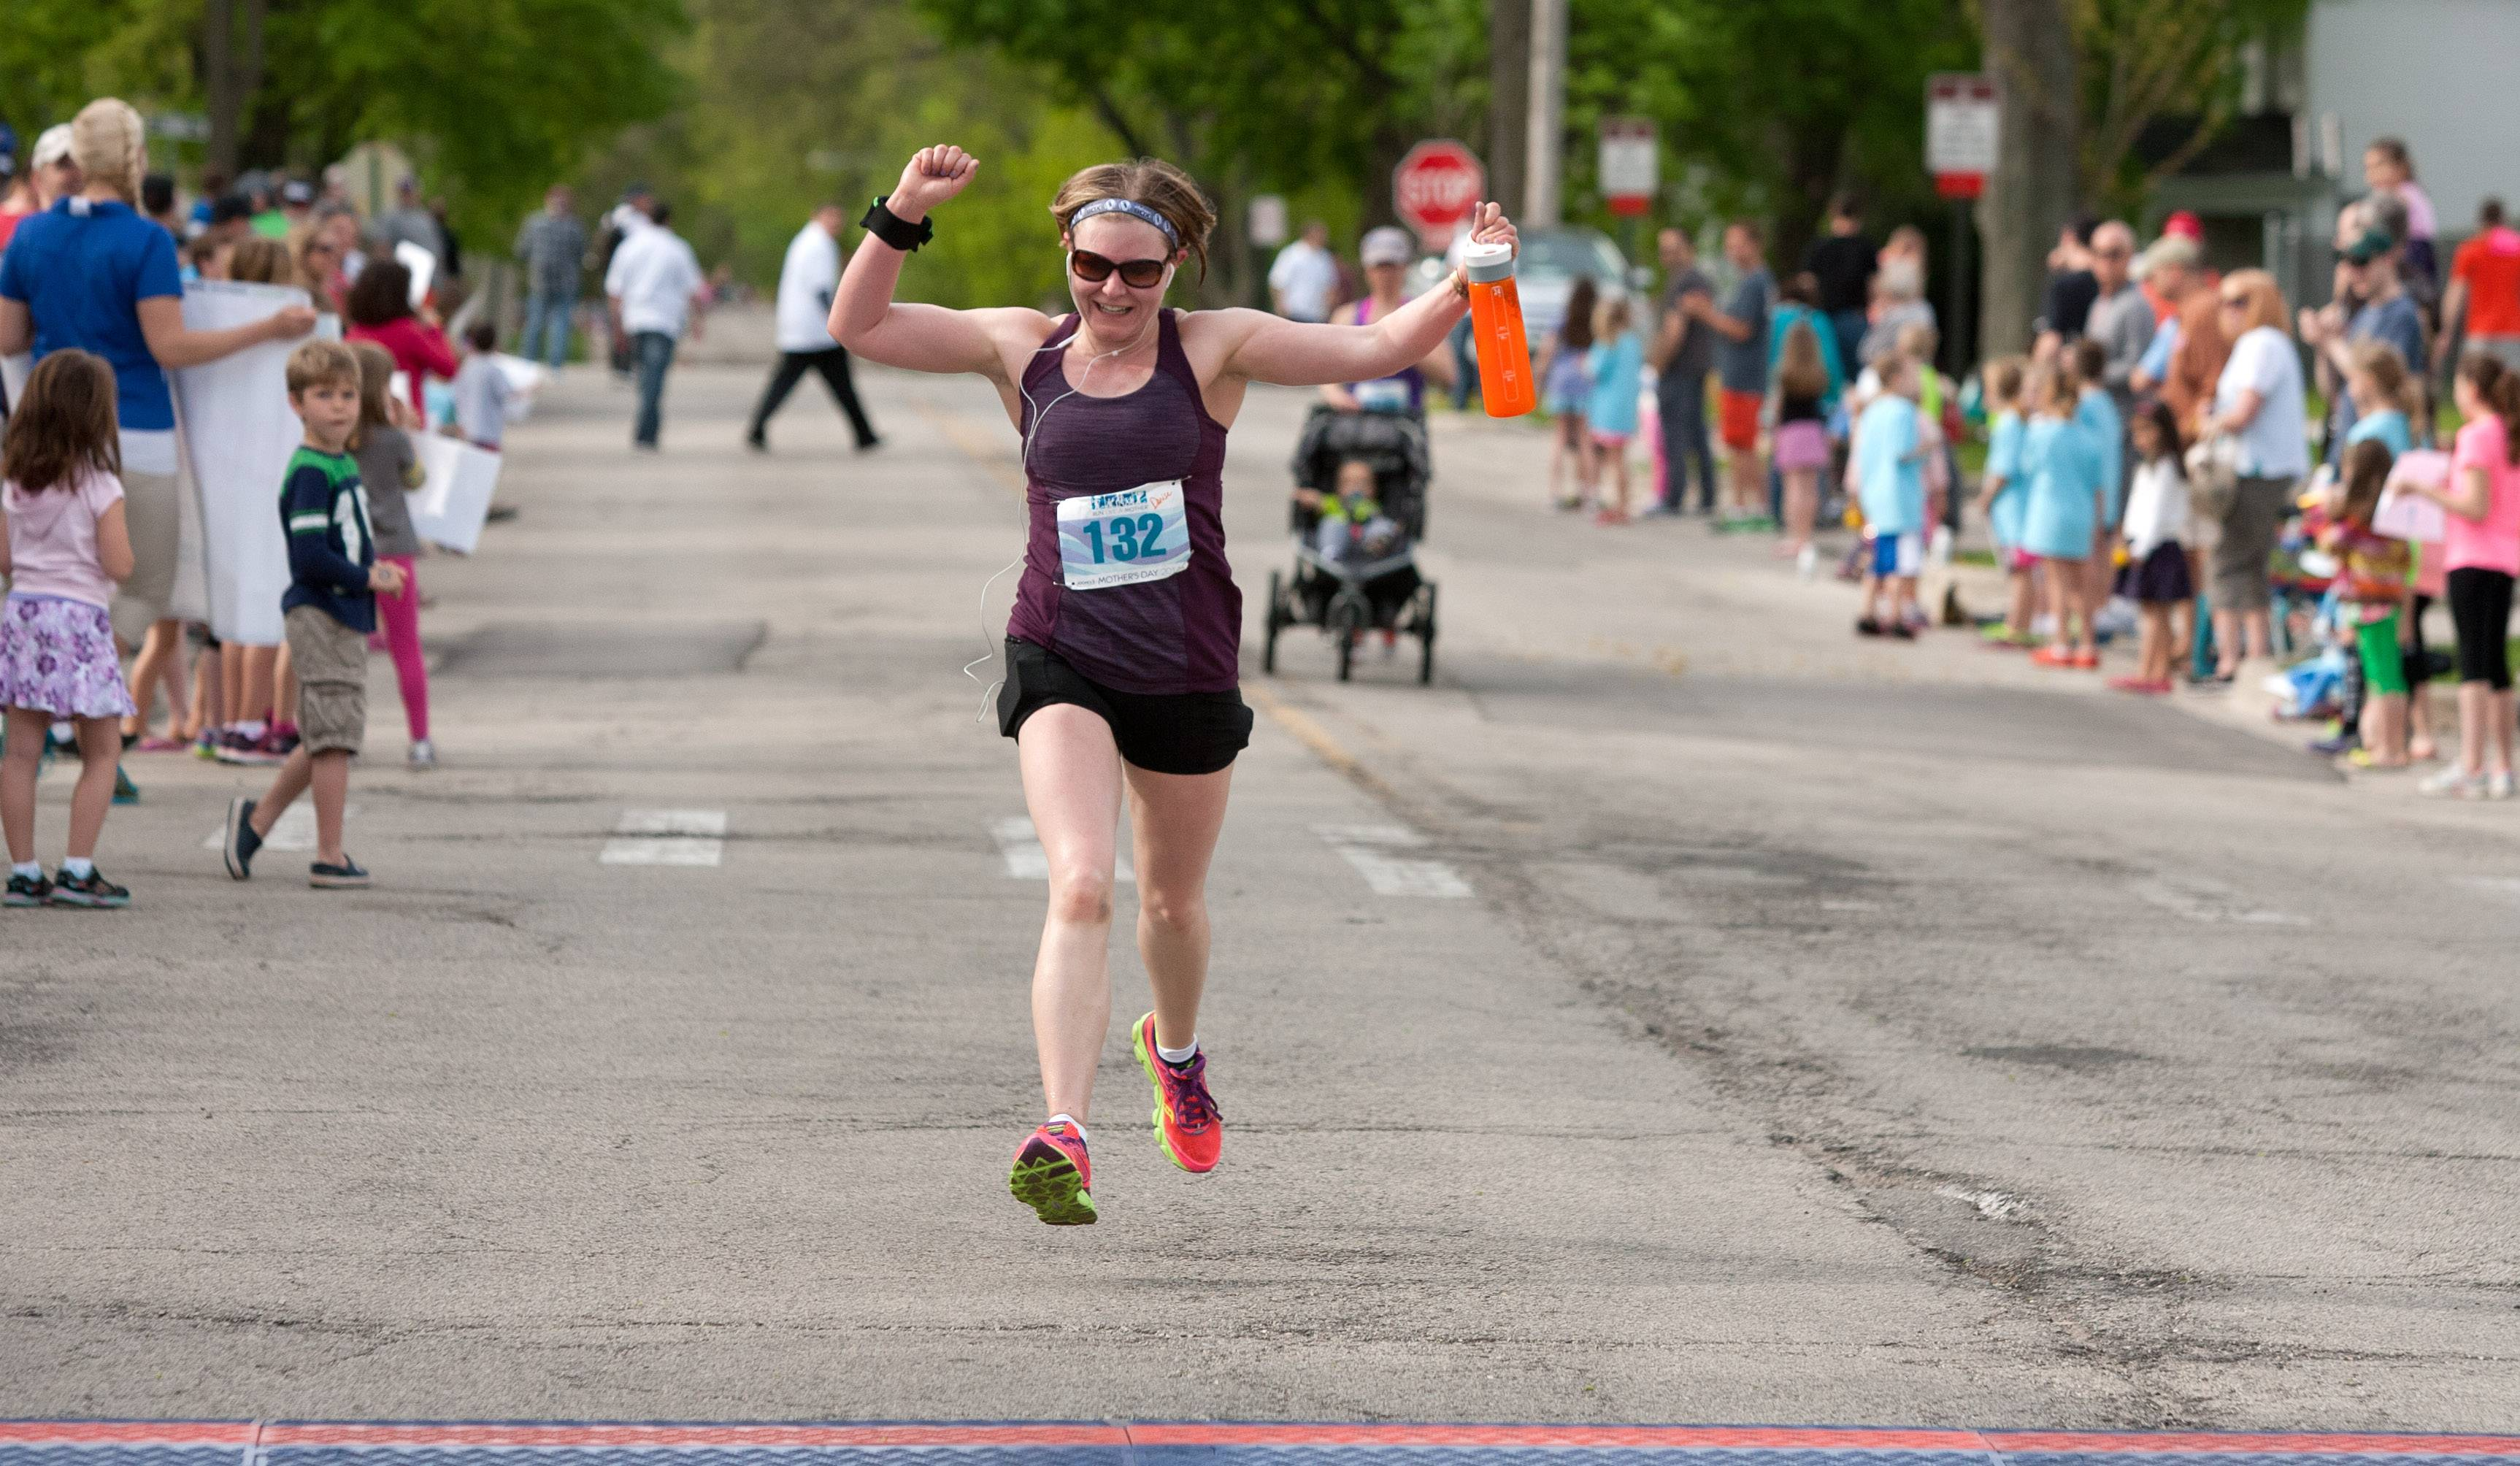 Denise Parejko of Clarendon Hills crosses the finish line during Sunday's Run Like a Mother 5K race in Hinsdale. The women-only run raises money to enrich the lives of children with Angelman syndrome.